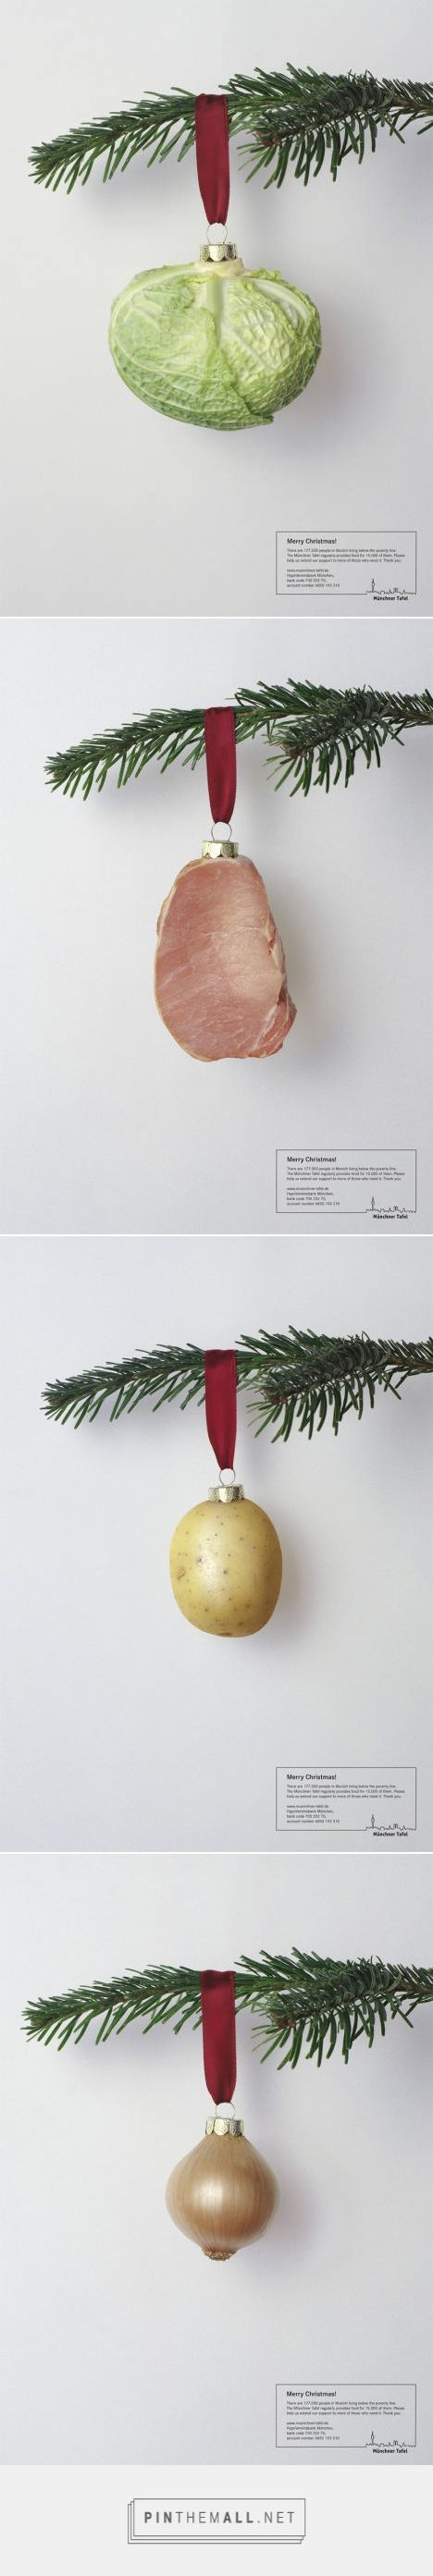 Munchner Tafel Christmas Tree Decorations - The Inspiration Room A Christmas advertising campaign in Christmas 2006, encouraging members of the public to set aside basic foods for people in need.